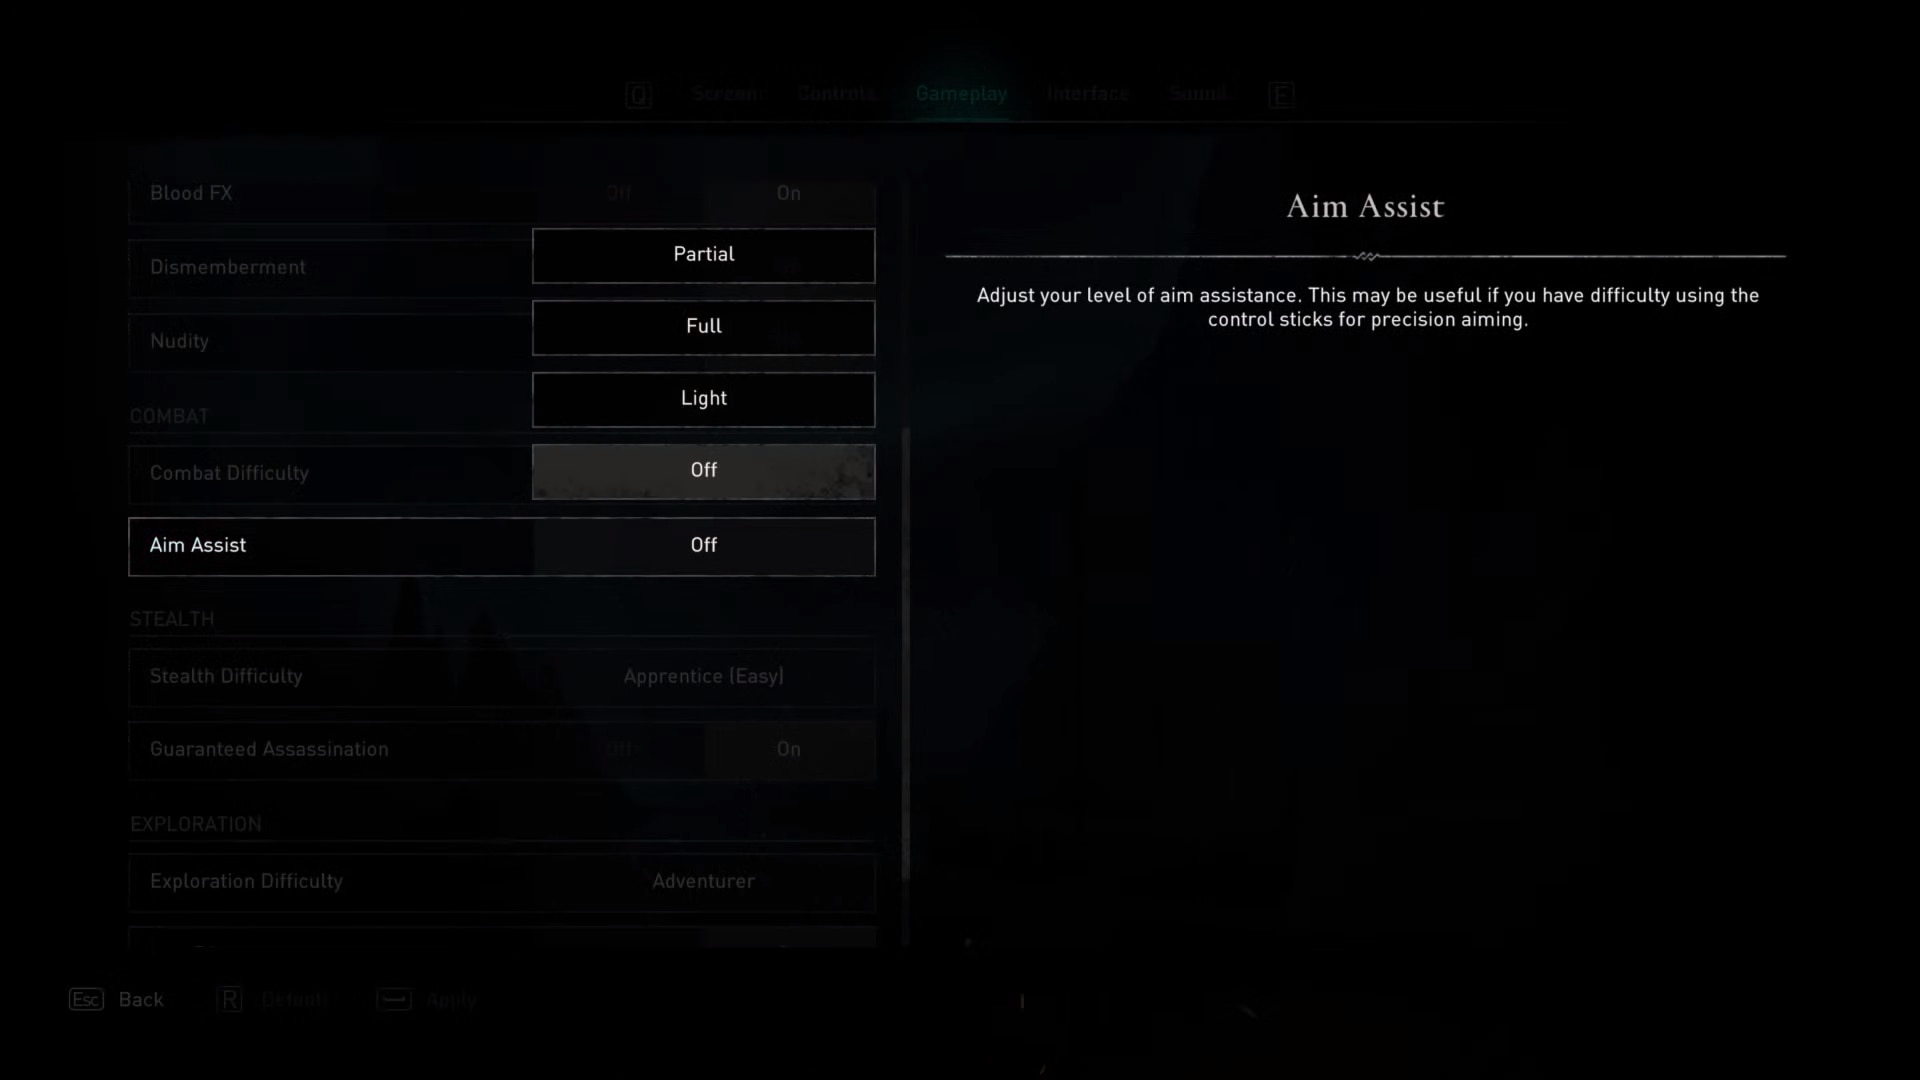 Aim Assist option in the Assassin's Creed Valhalla gameplay options.